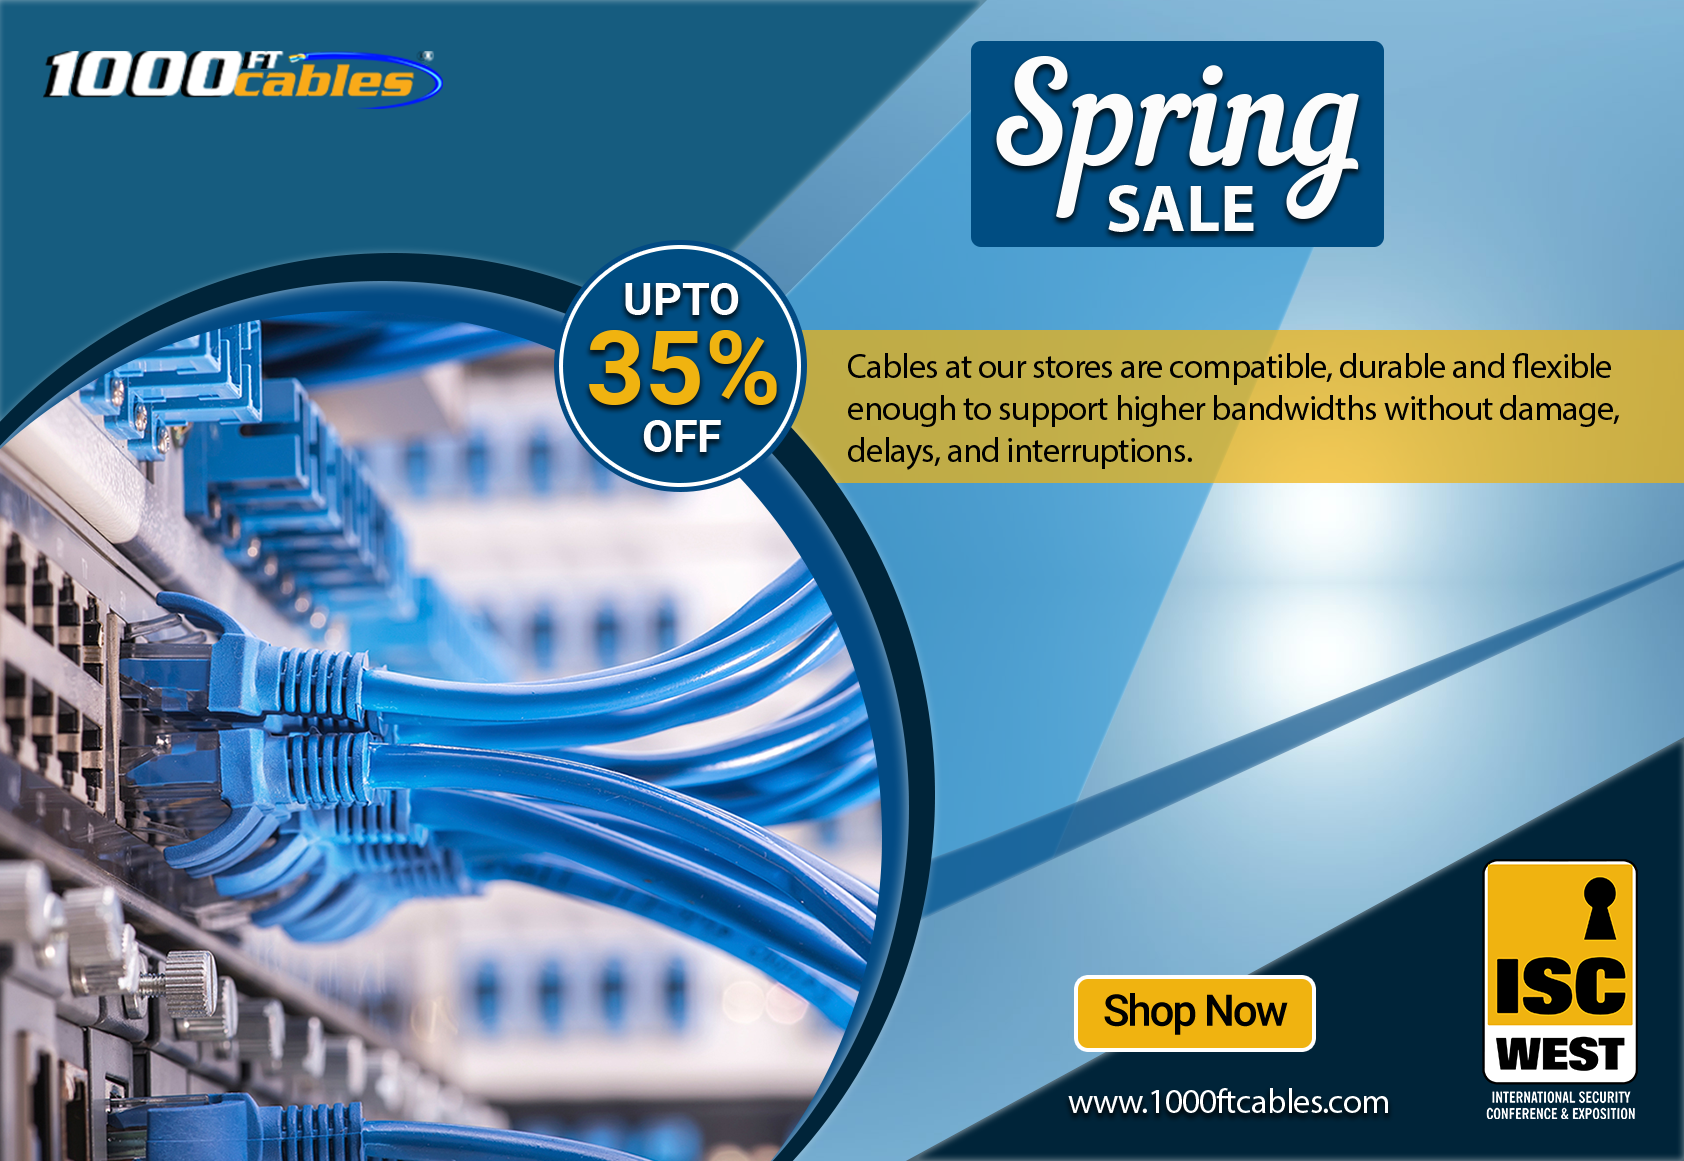 spring sale Data cables, Cables, Networking cables